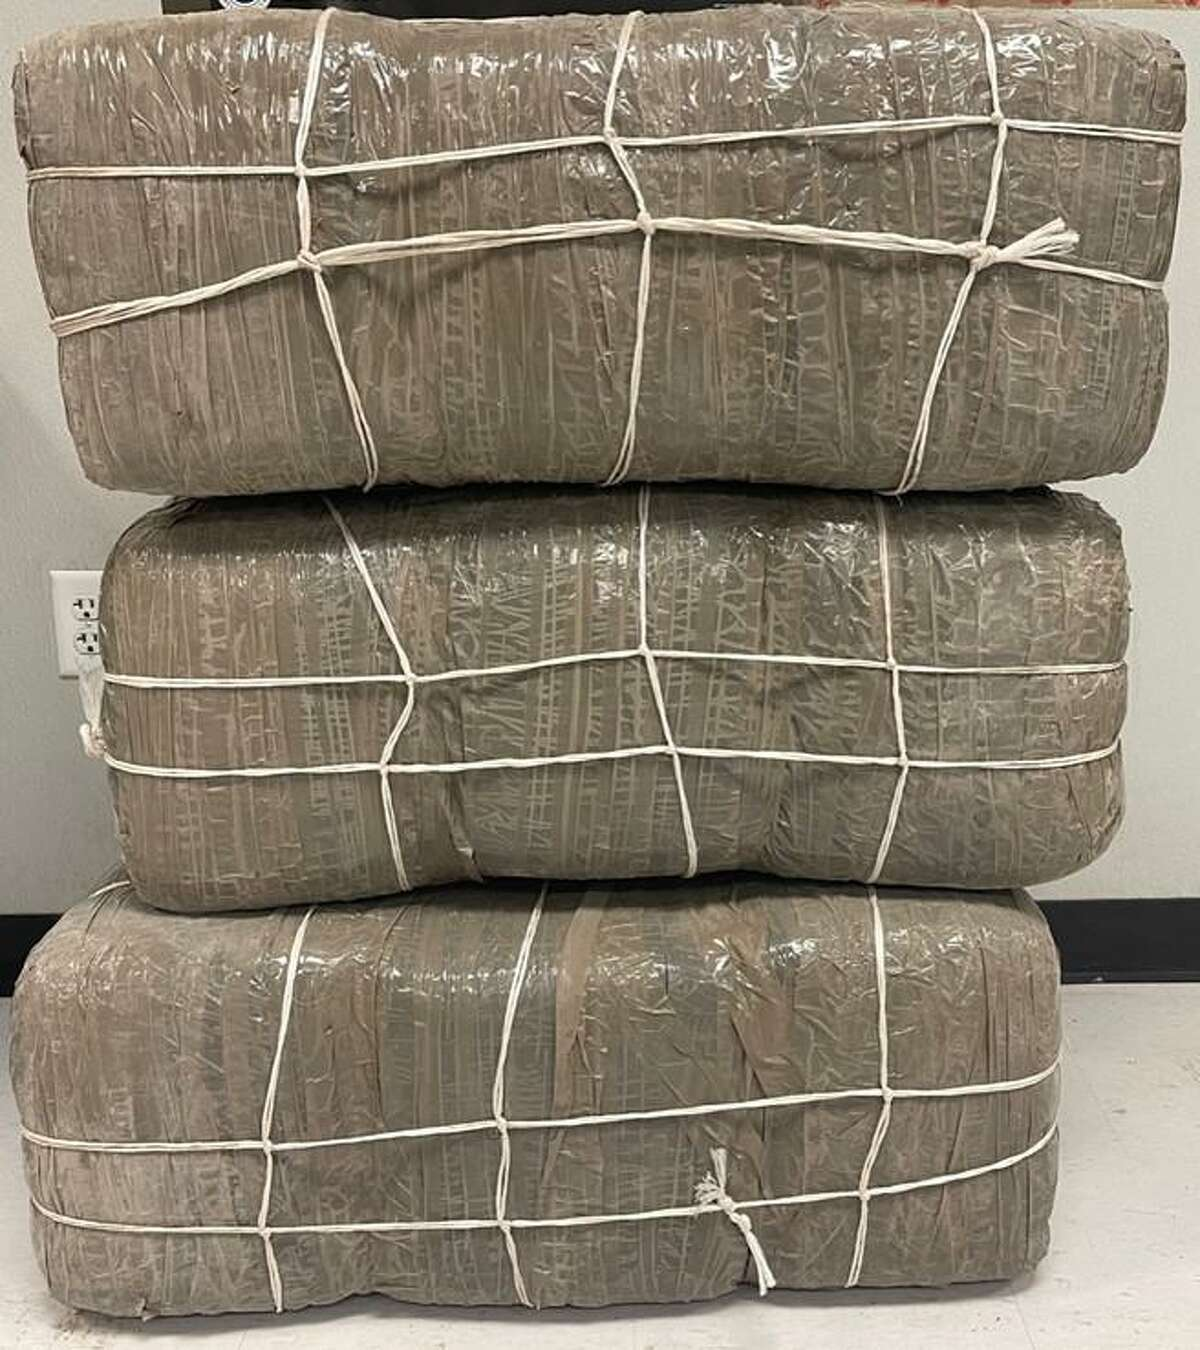 U.S. Border Patrol agents said they seized these 216.3 pounds of marijuana with an estimated value of $173,040.